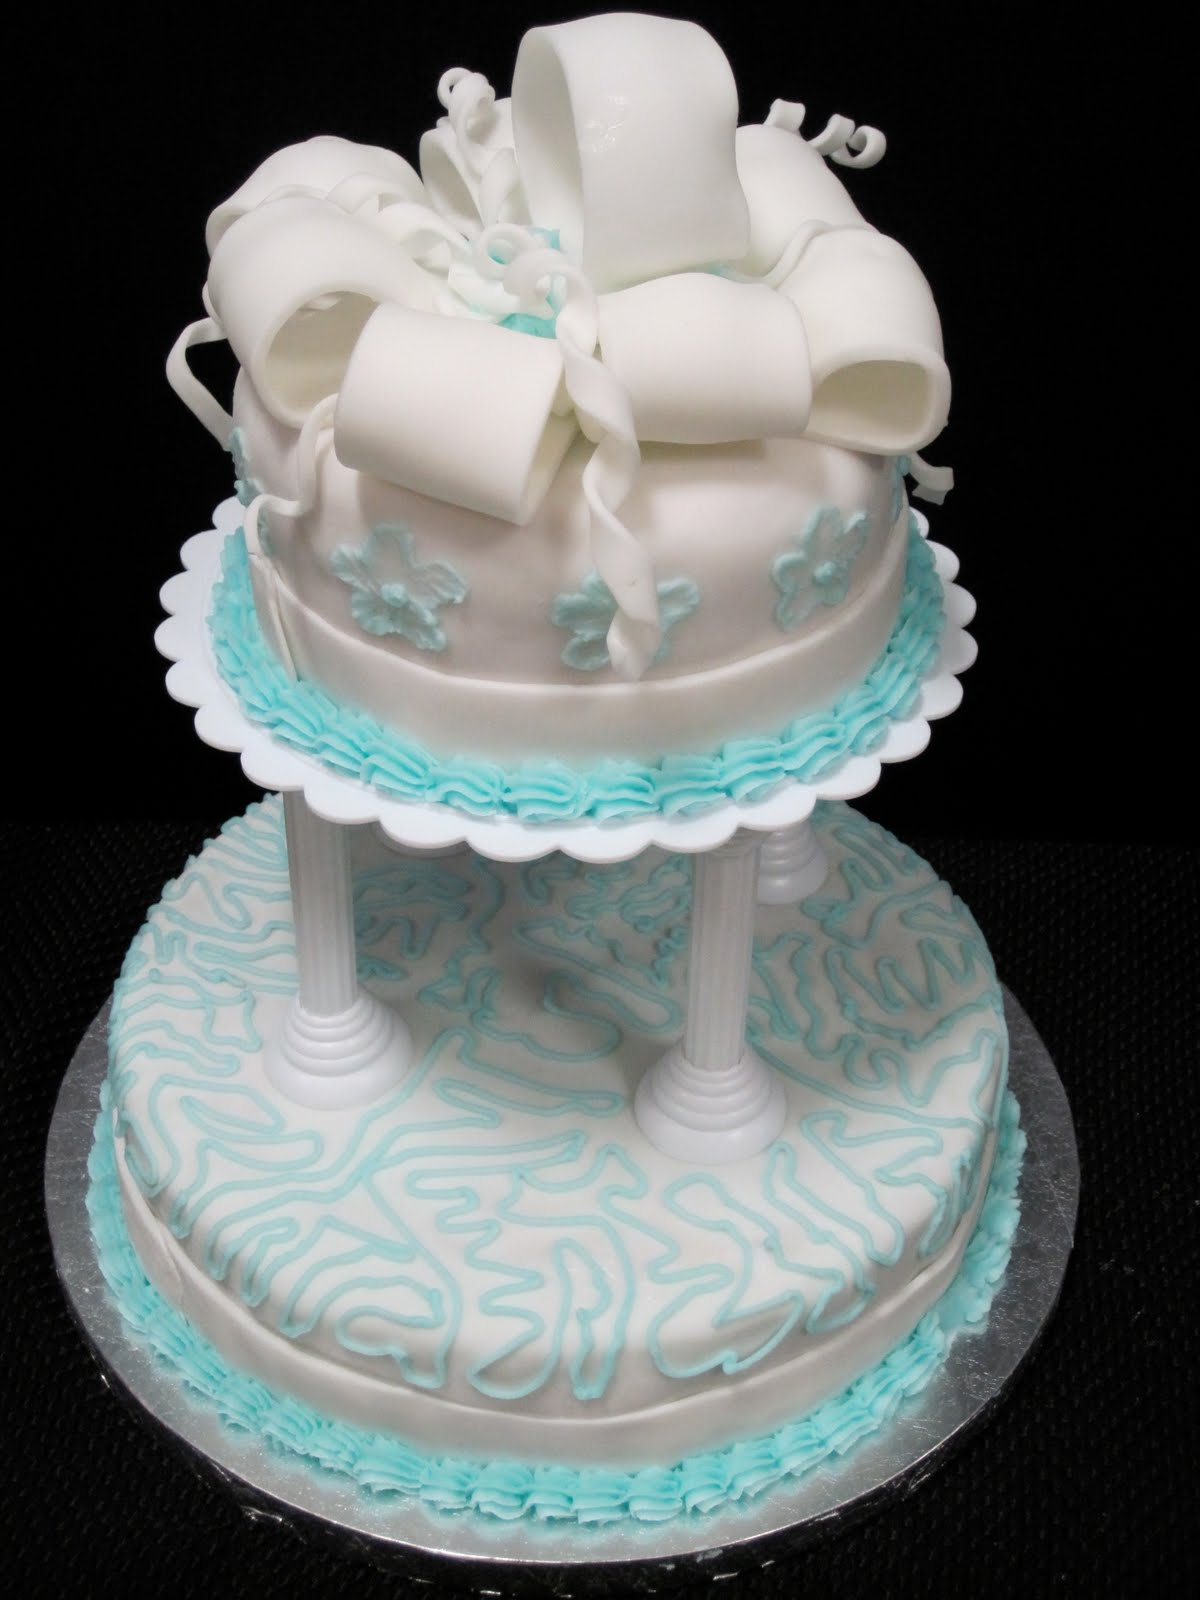 Cake Design Wilton : Every Pot and Pan: Wilton Cake Decorating: Course 3